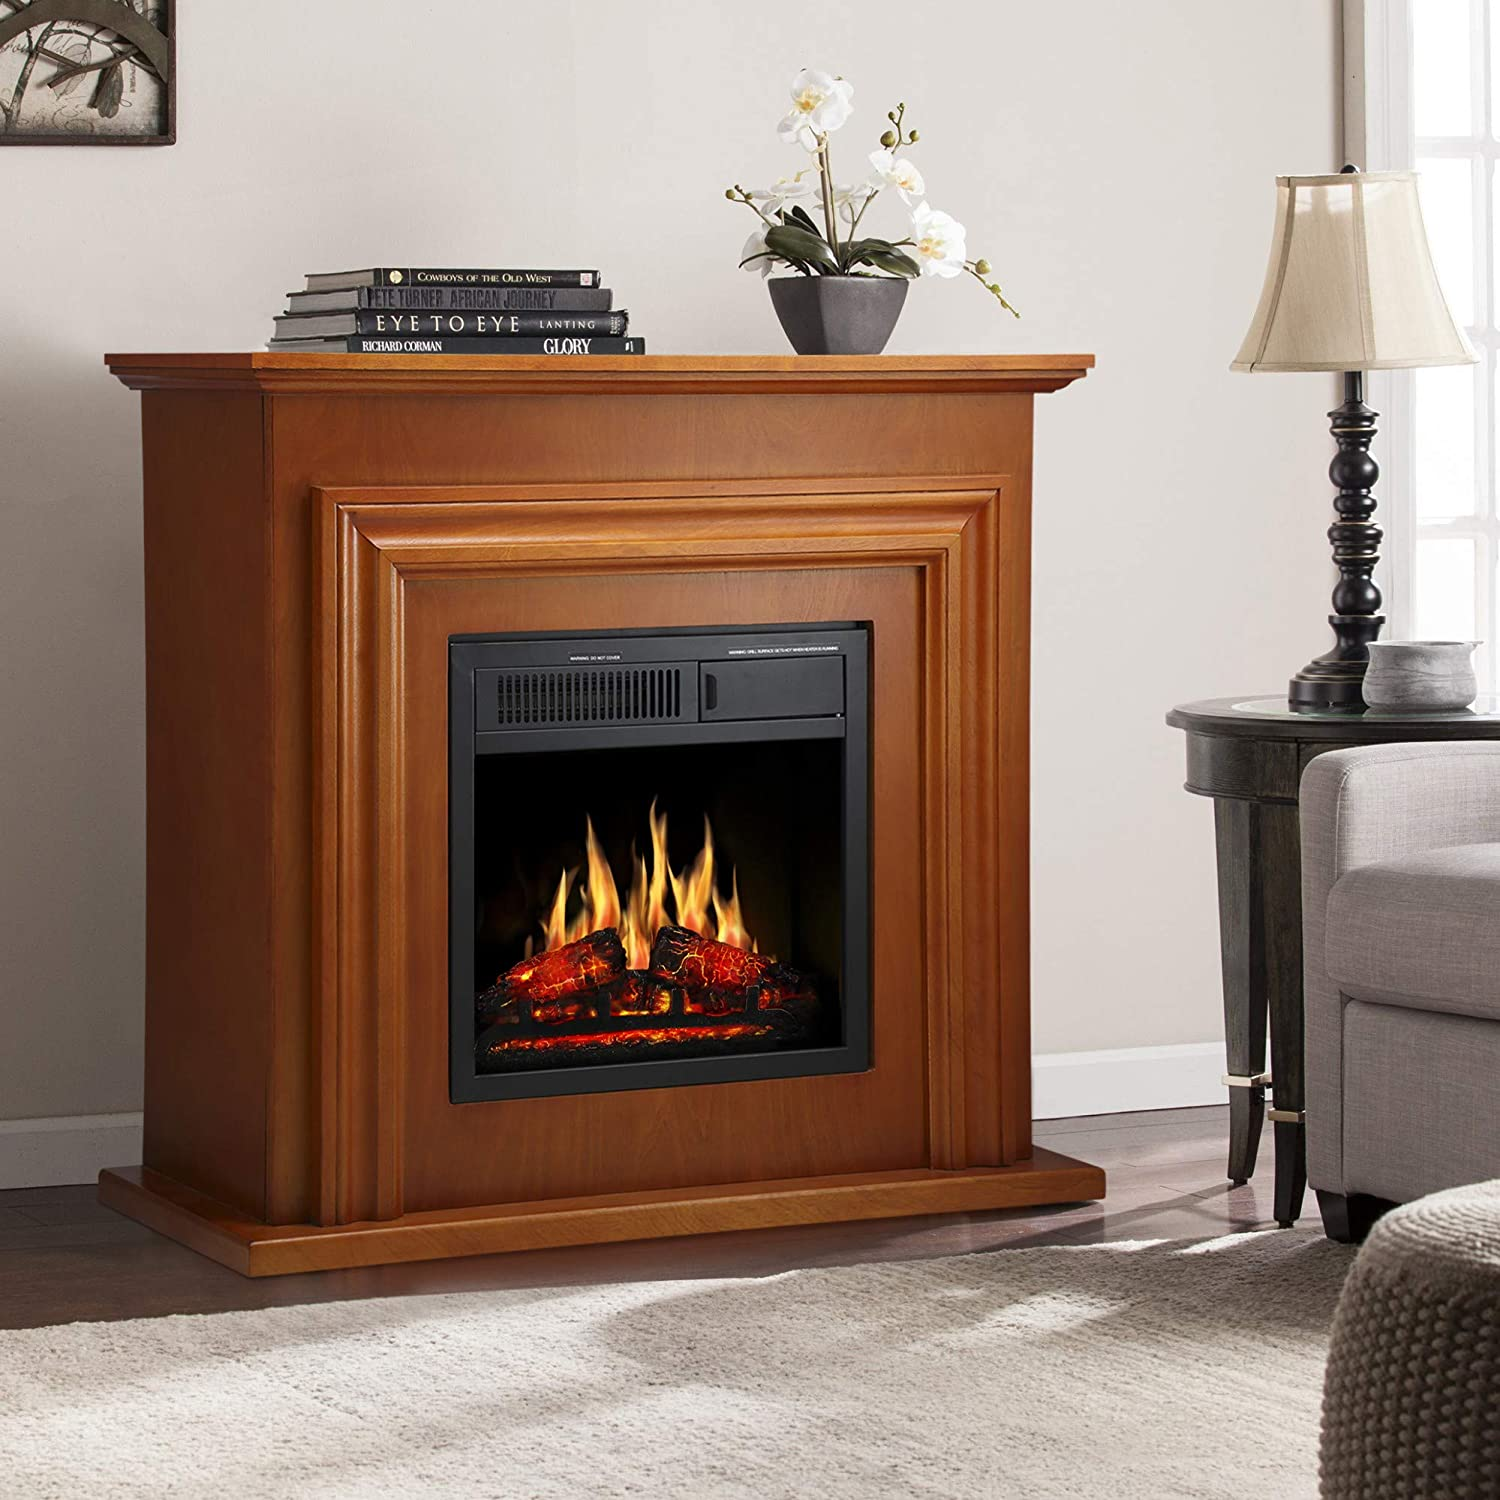 JAMFLY Wood Electric Fireplace Mantel Package Freestanding Heater Corner Firebox with Log Hearth, Remote Control, 750-1500W Birch Finish